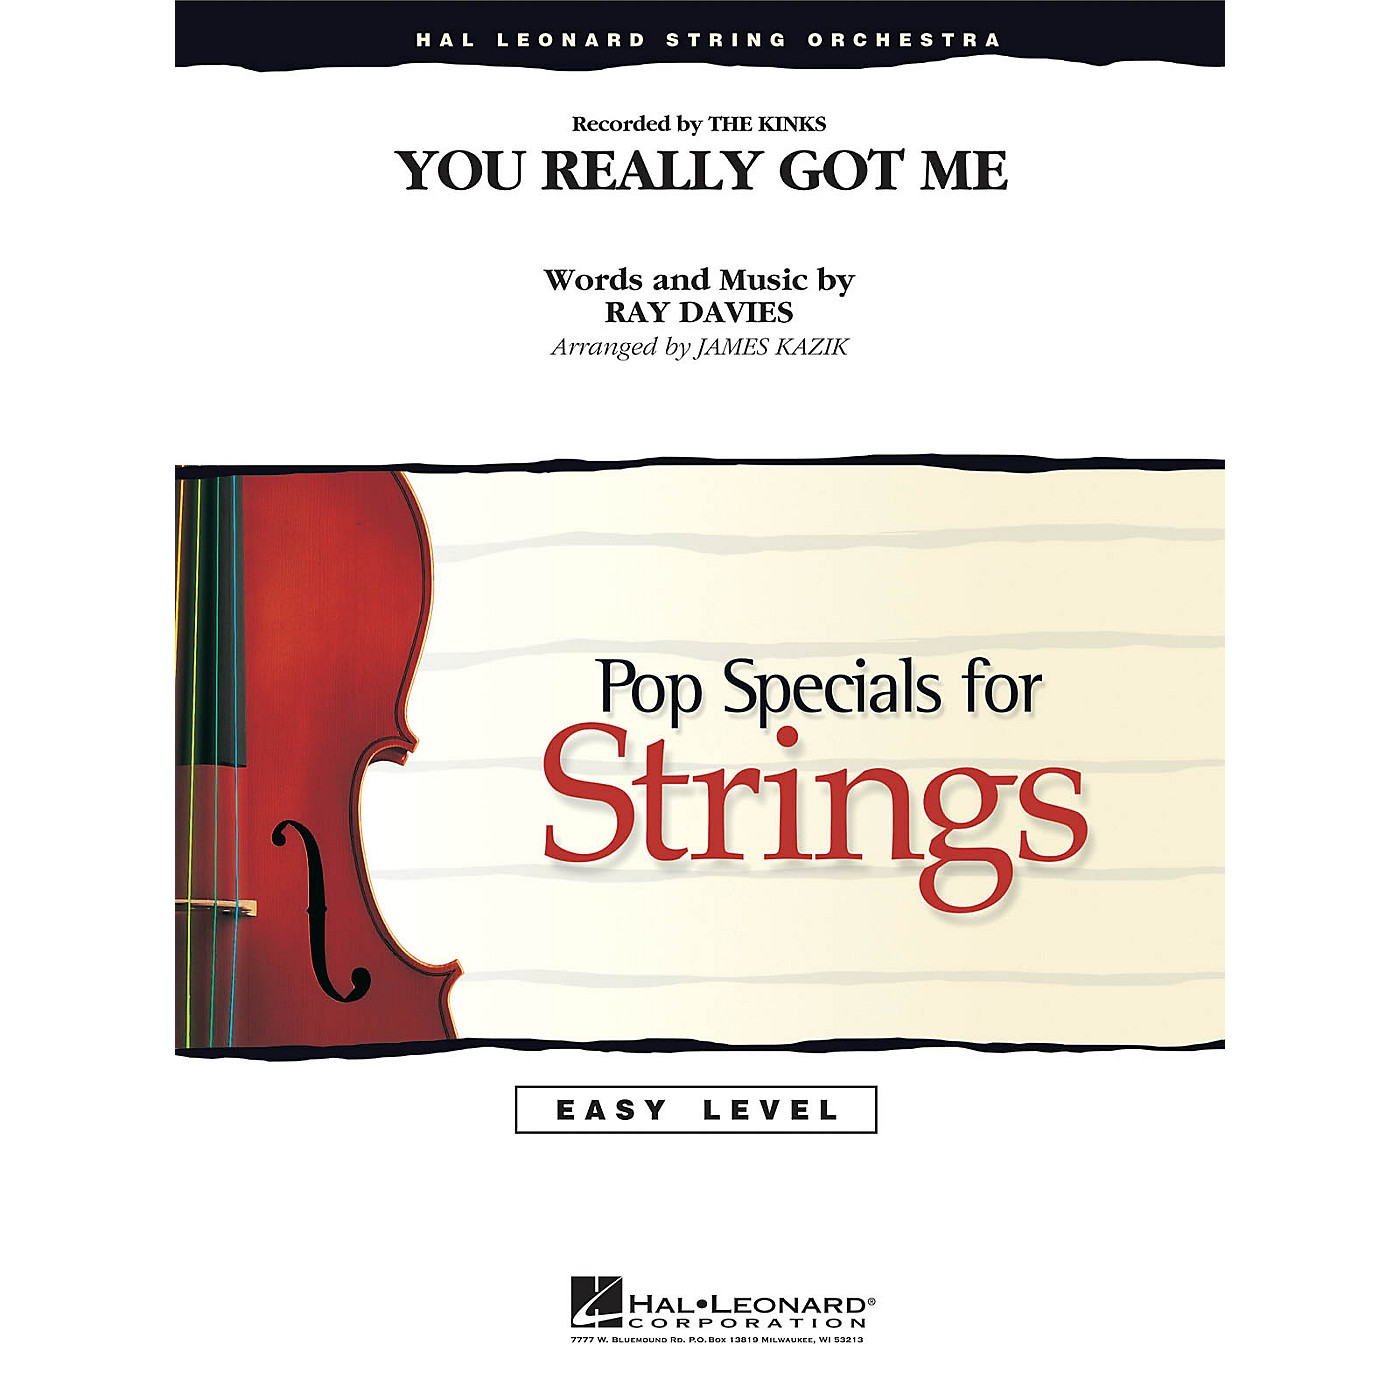 Hal Leonard You Really Got Me Easy Pop Specials For Strings Series Softcover by The Kinks Arranged by James Kazik thumbnail